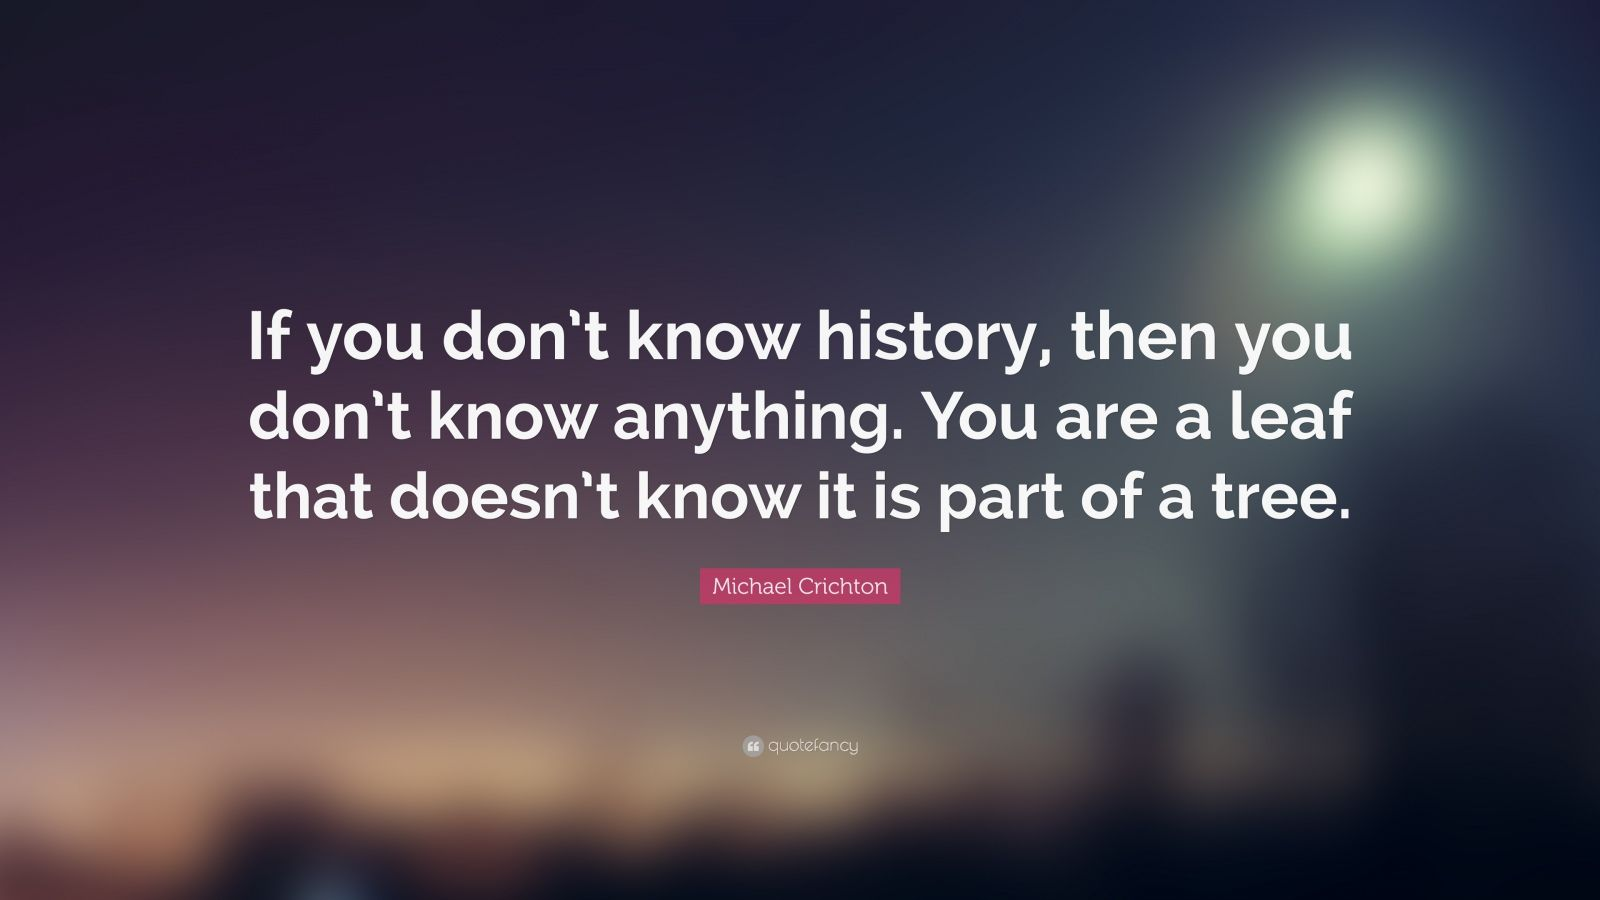 "History Quotes: ""If you don't know history, then you don't know anything. You are a leaf that doesn't know it is part of a tree."" — Michael Crichton"